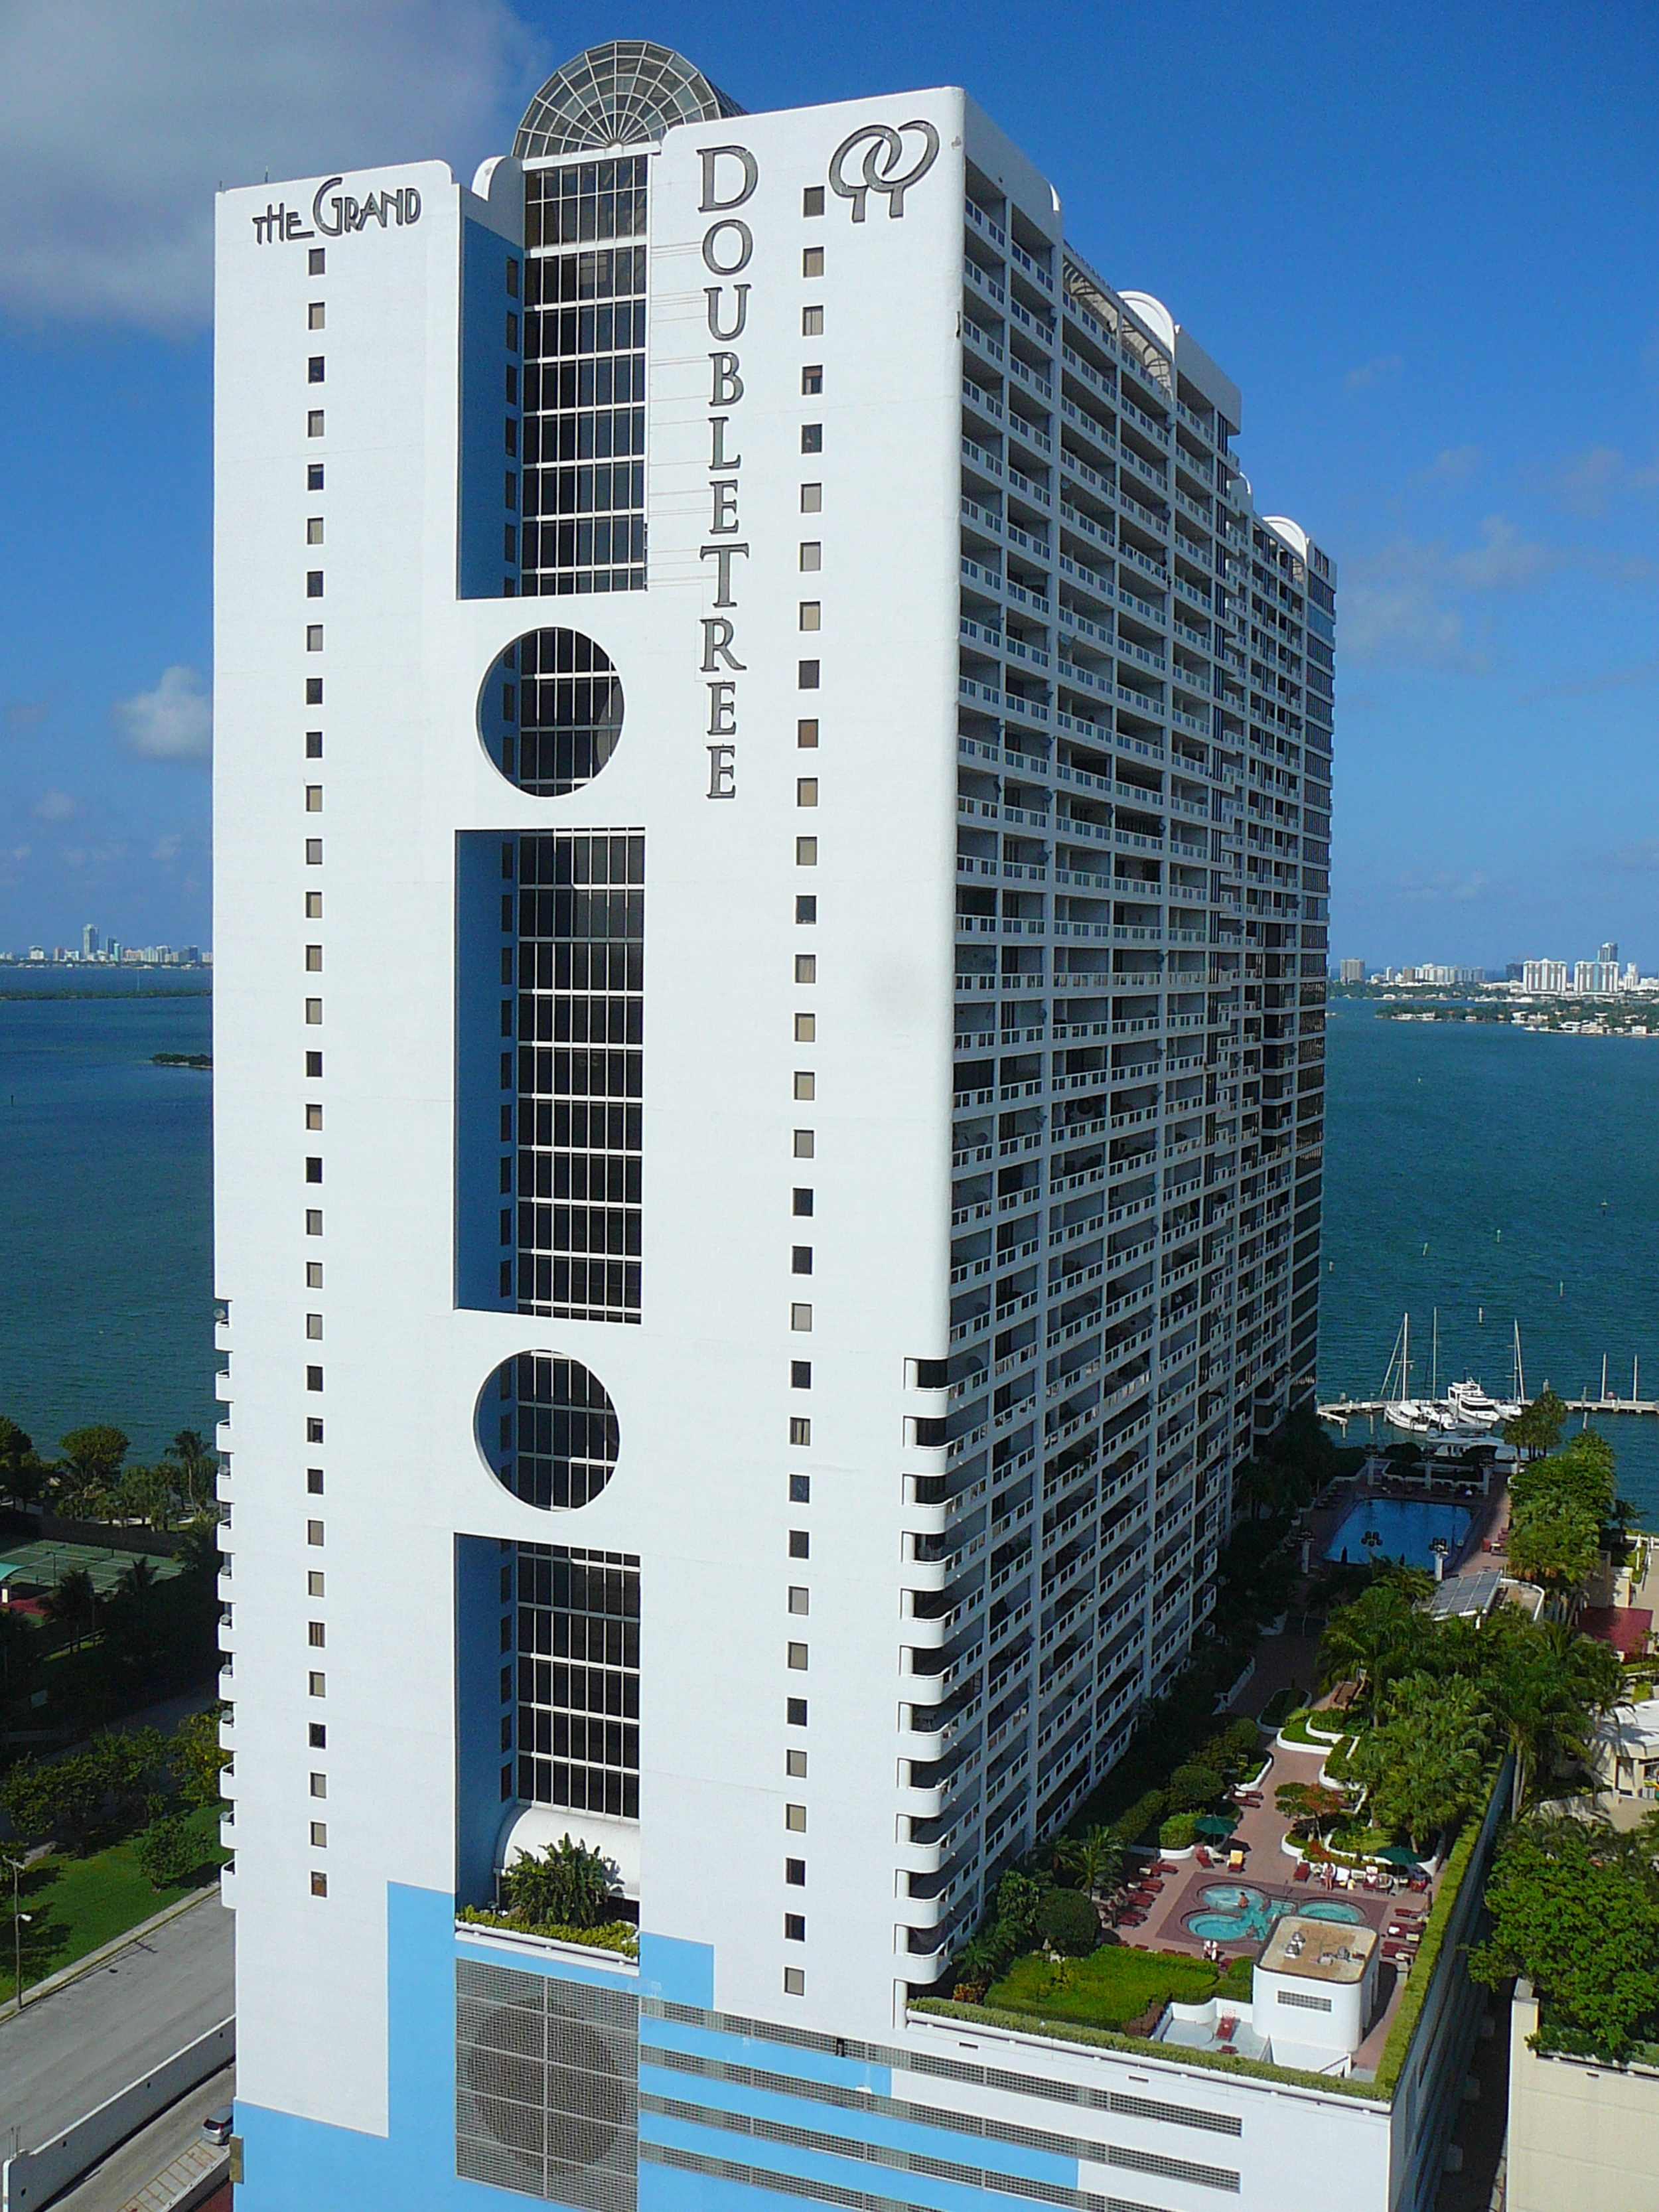 Doubletree_Grand_Hotel_Biscayne_Bay.jpg